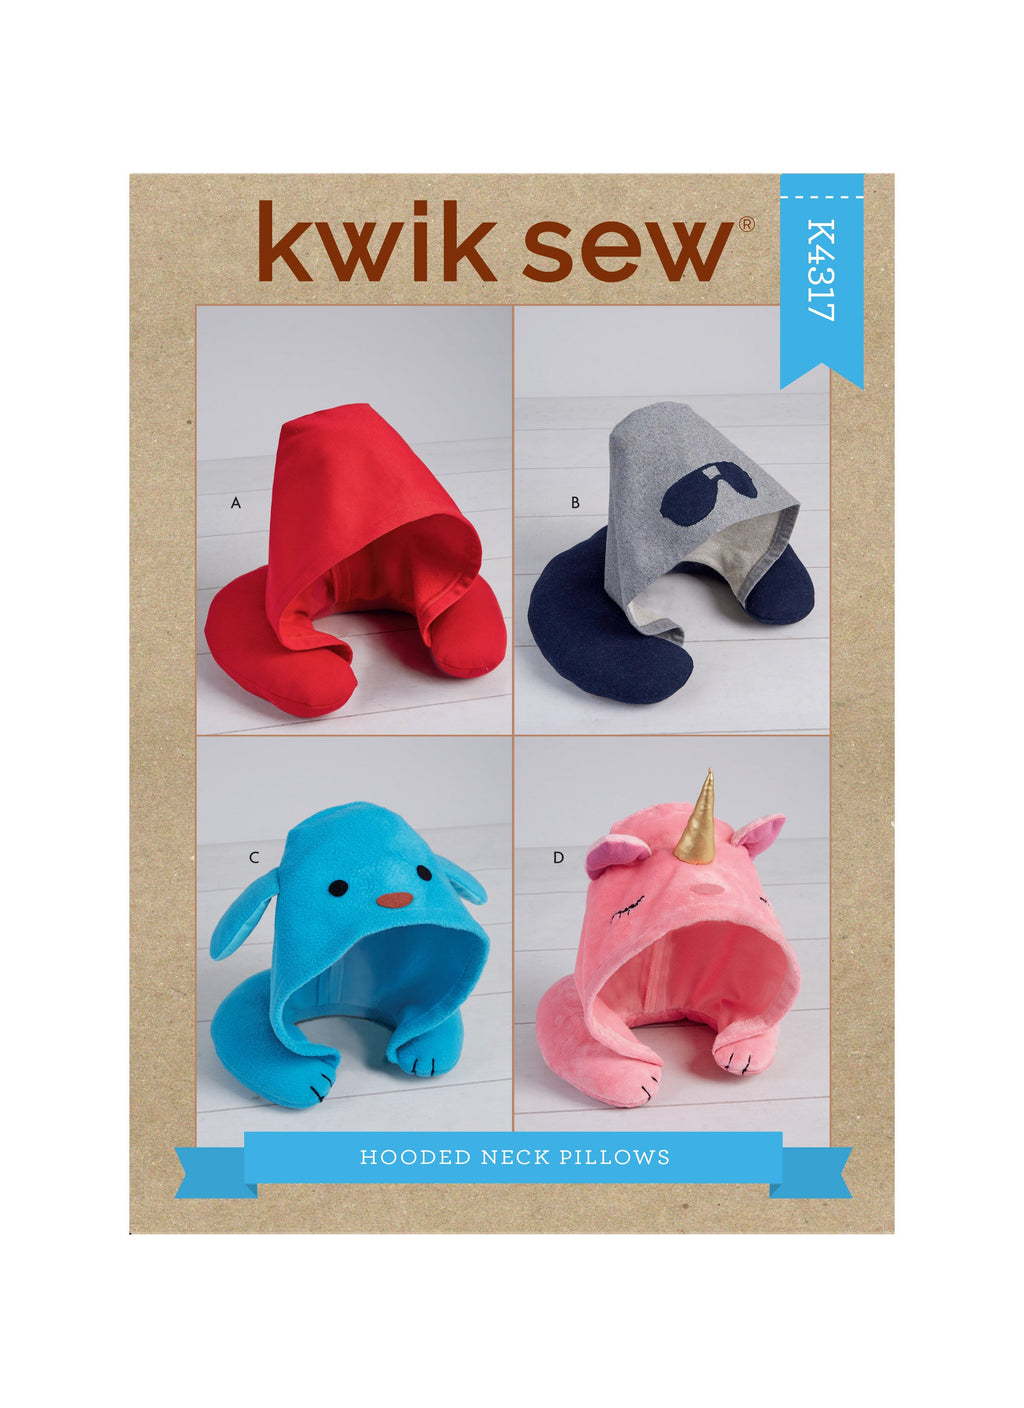 Kwik Sew 4317 Adults' and Kids' Hooded Travel Neck Pillows pattern